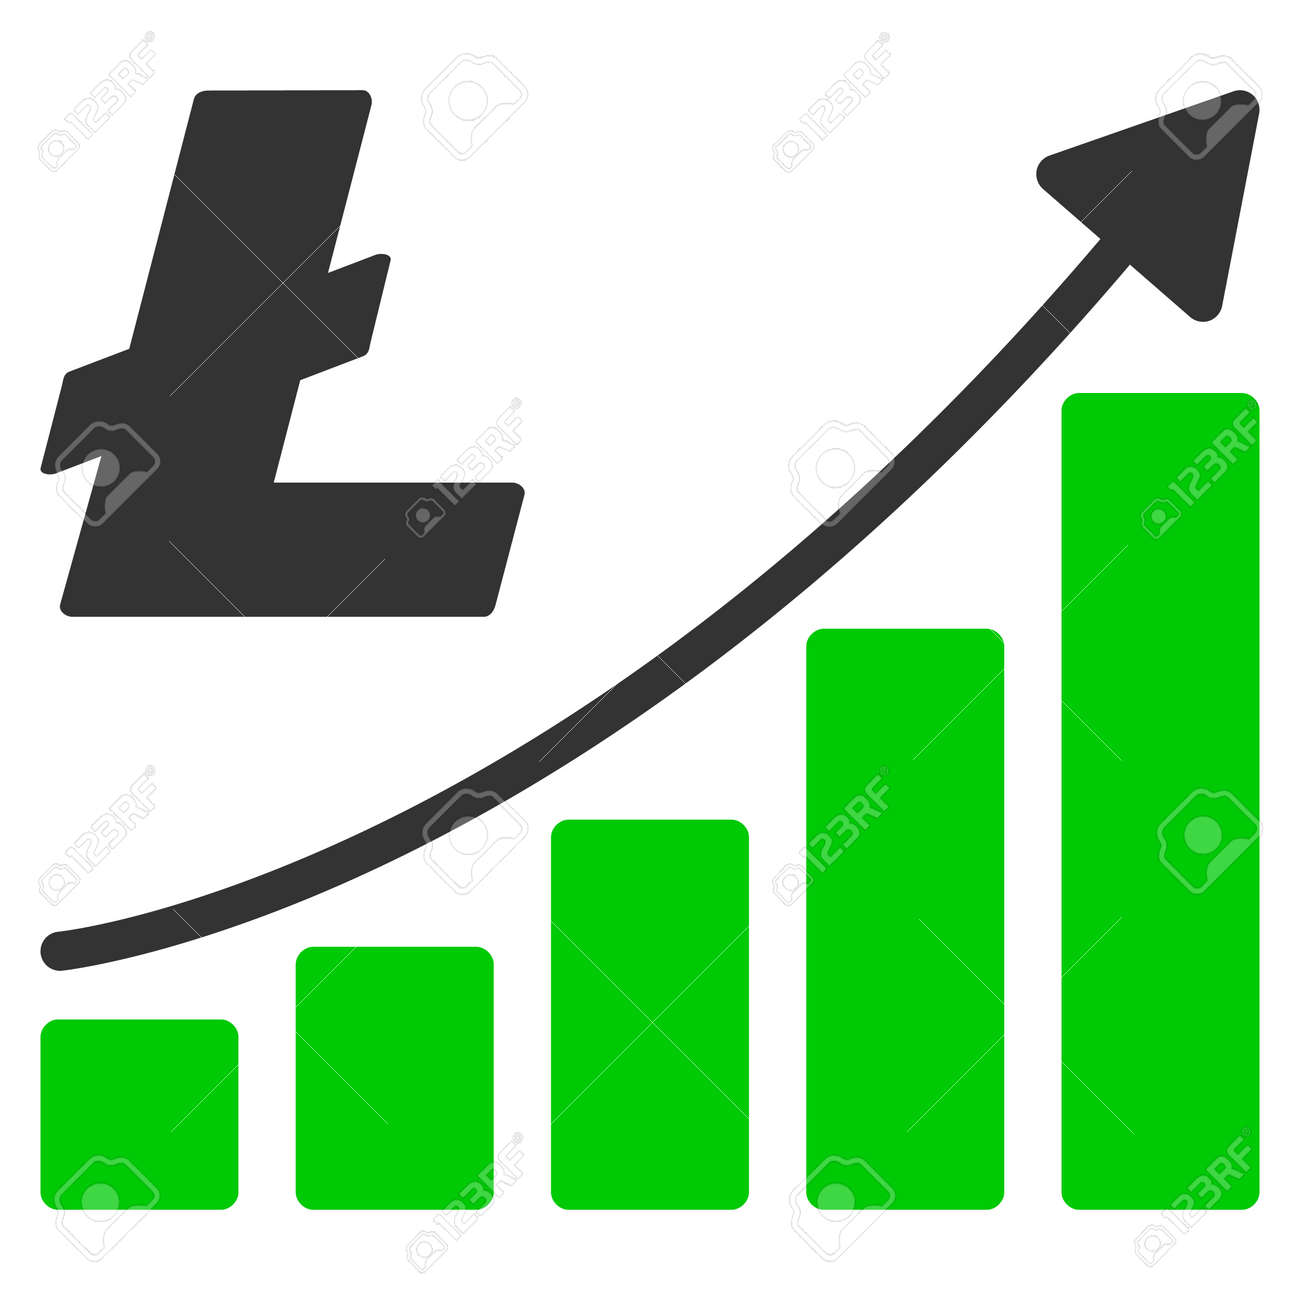 Litecoin Growth Trend Flat Vector Pictogram An Isolated Illustration On A White Background Stock